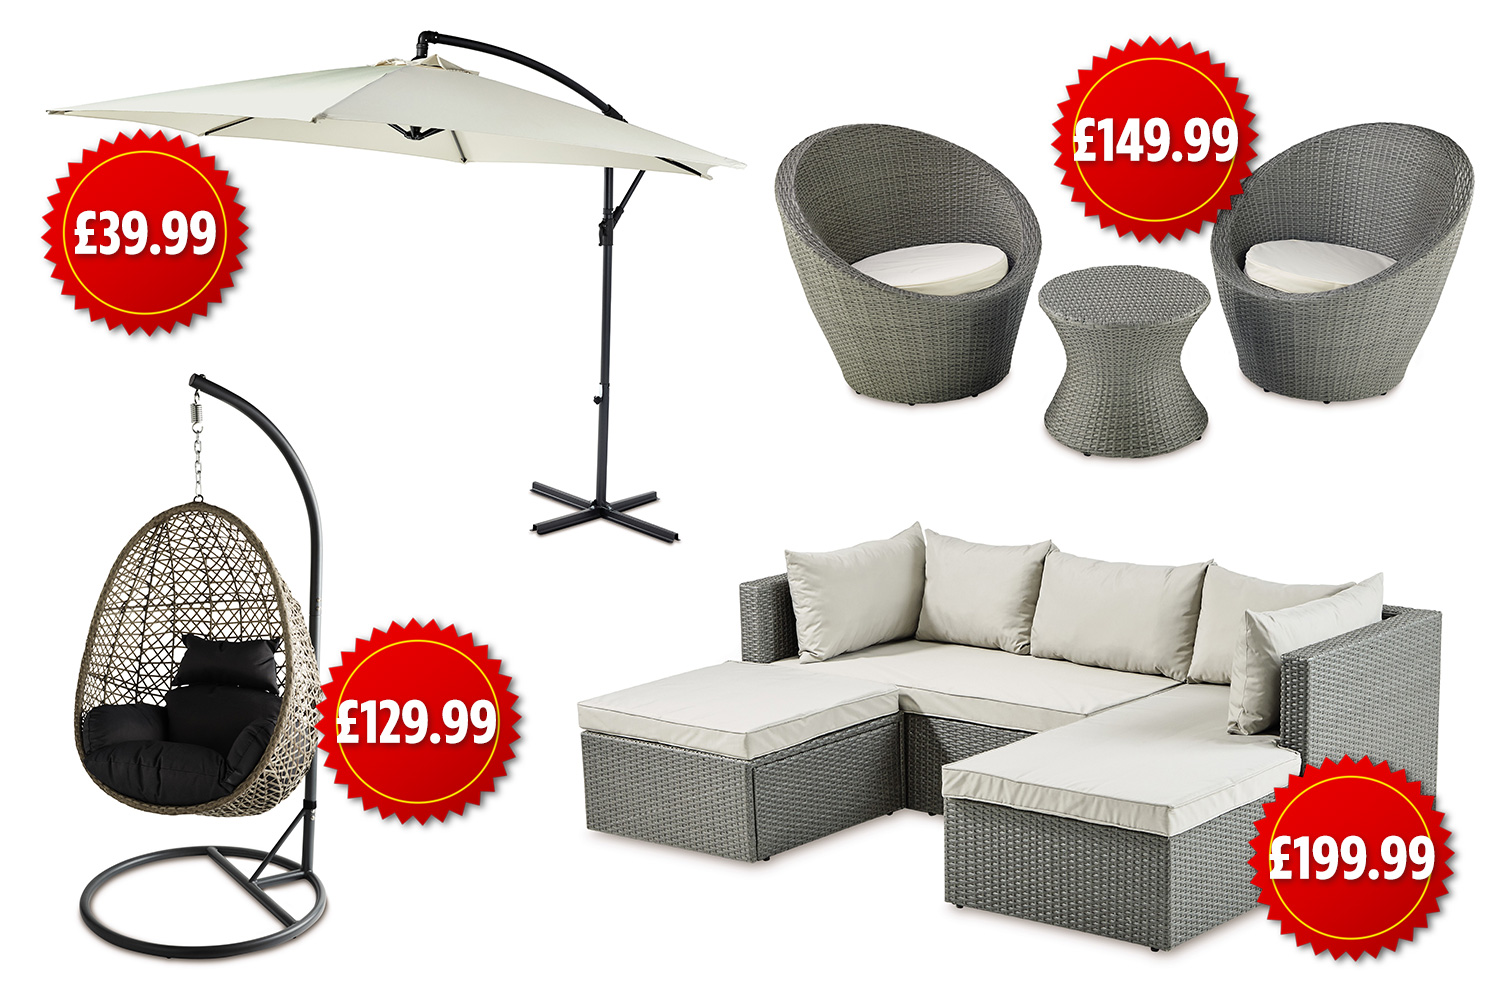 Rattan Corner Sofa Ireland Aldi Selling Beautiful Garden Furniture For A Quarter The Price Of